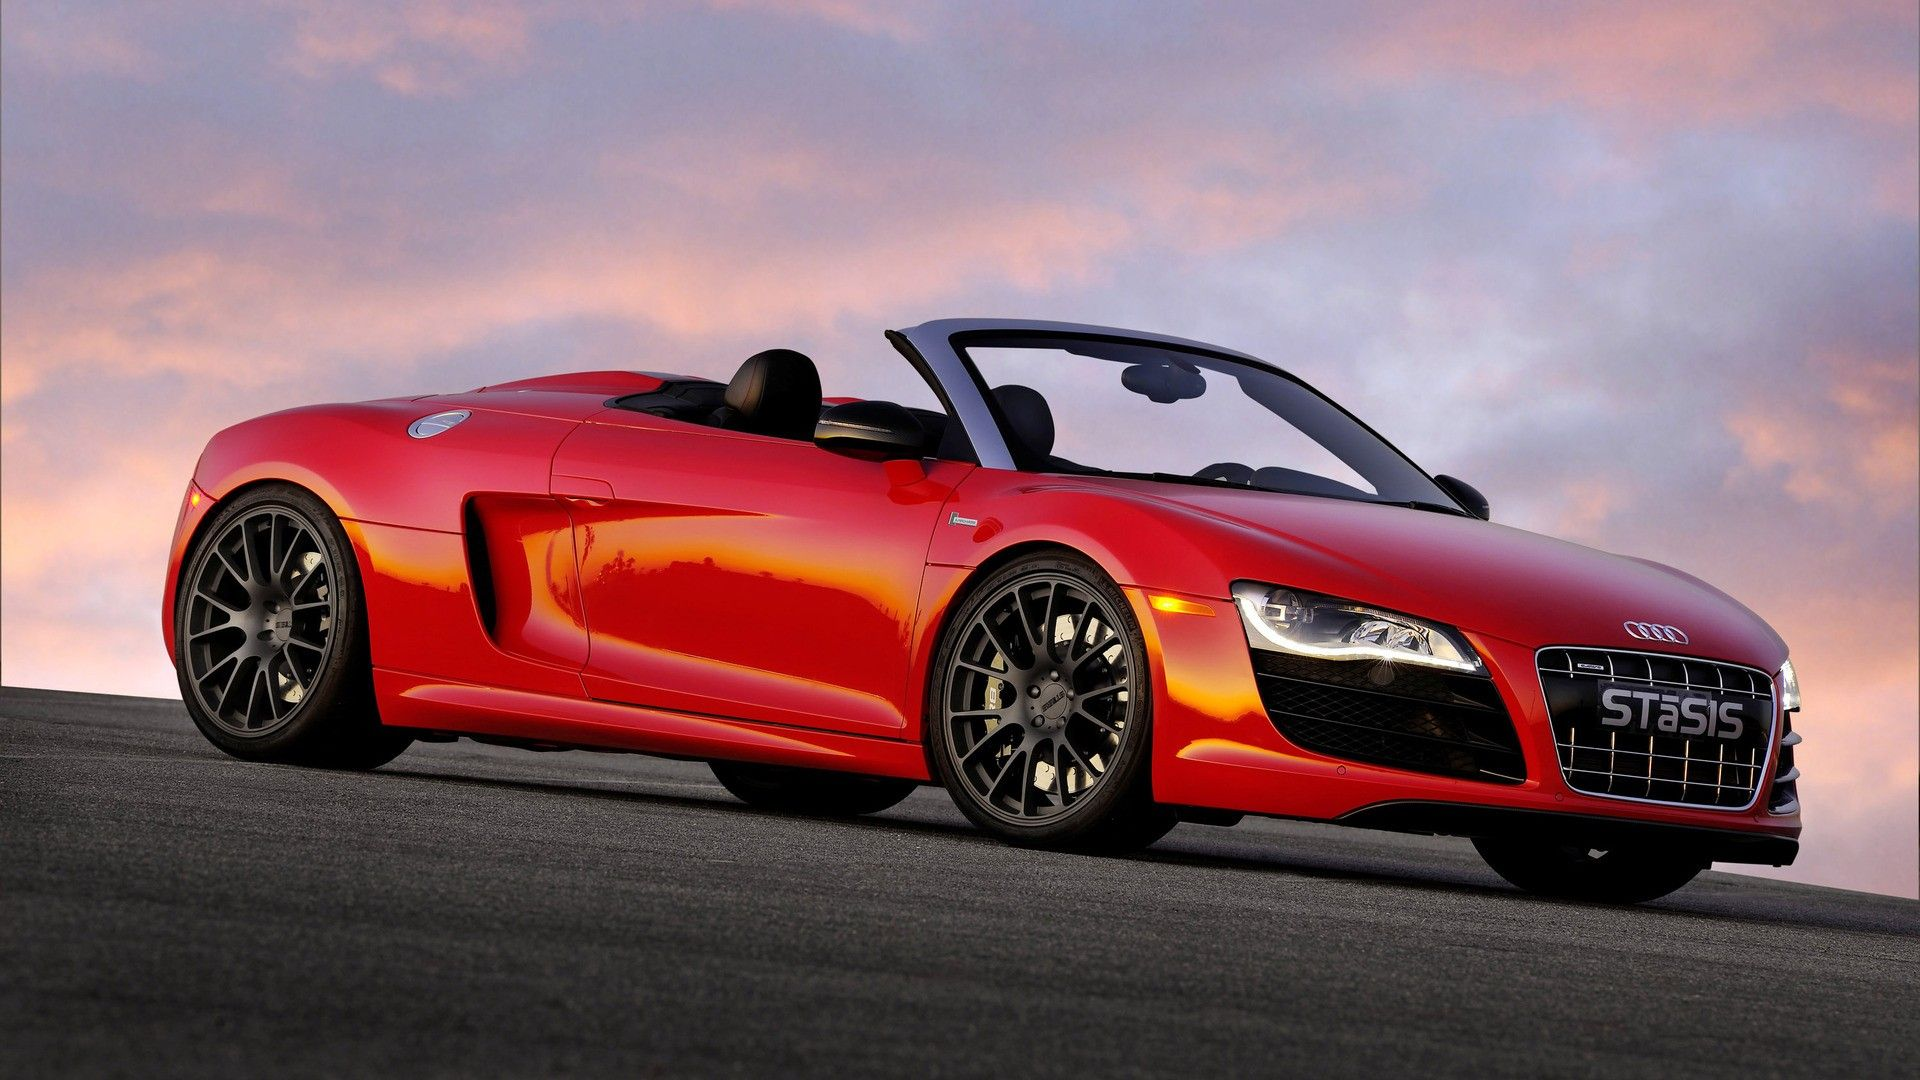 Audi R8 Cabriolet Cars Wallpapers HD